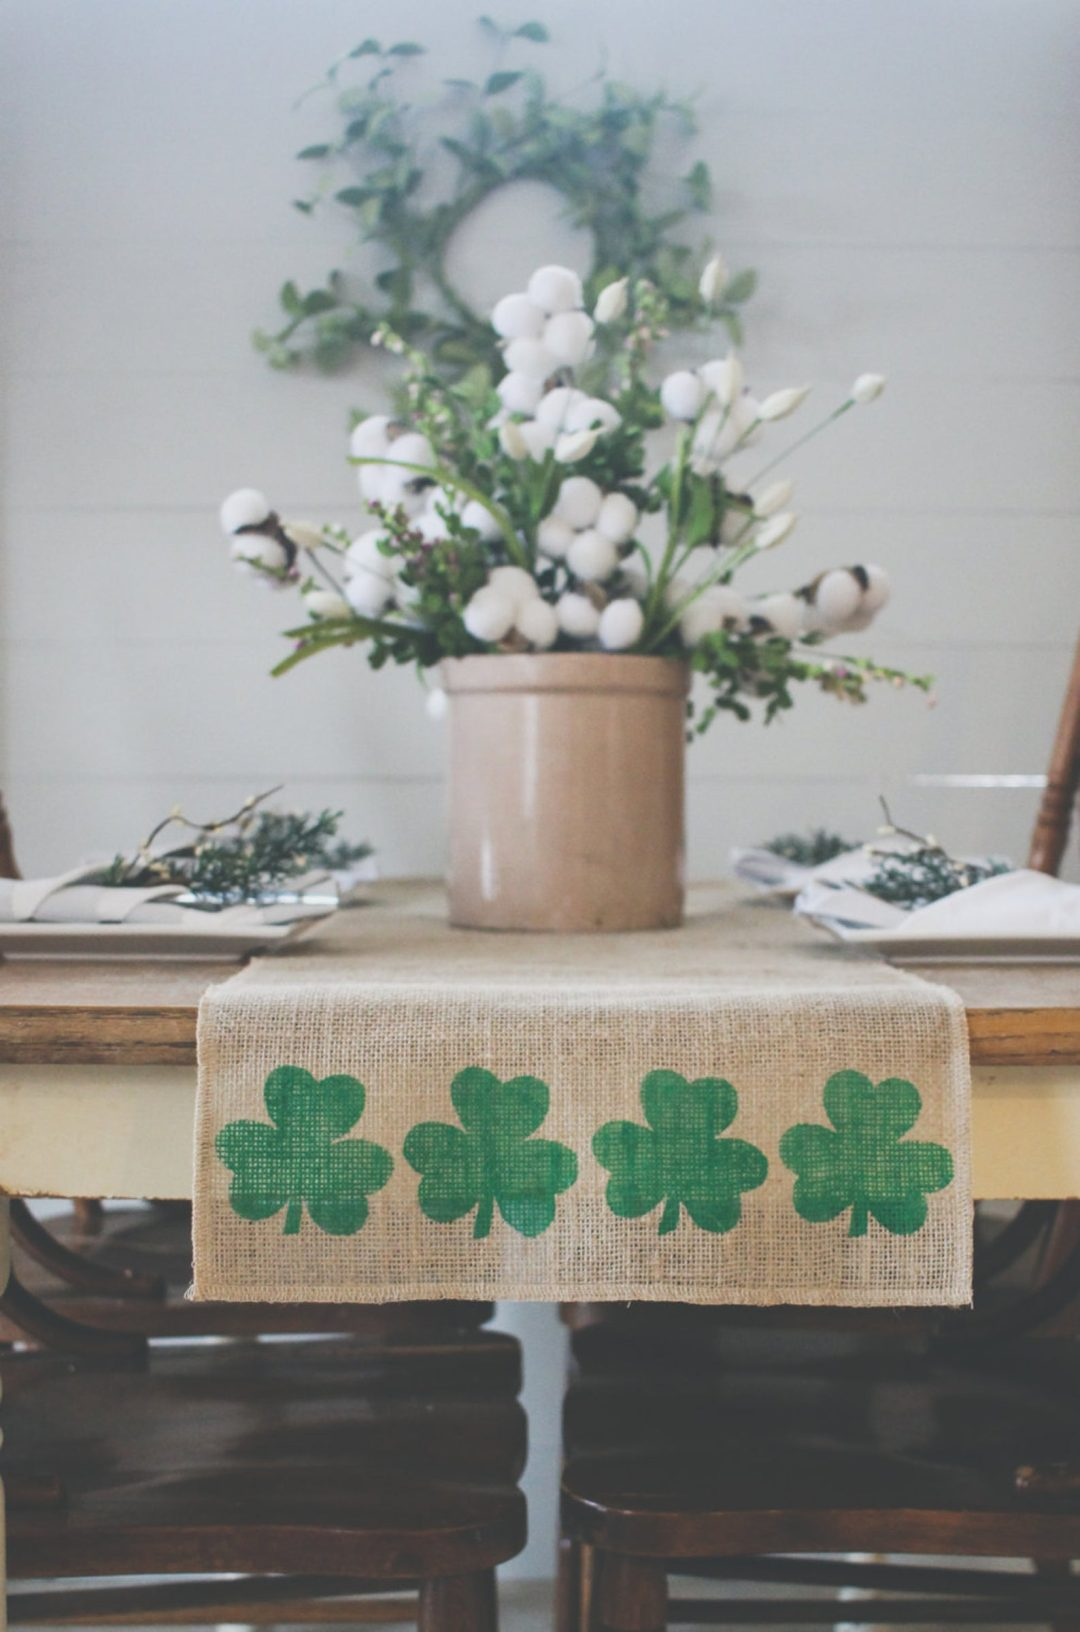 St. Patrick's Day decor ideas - St. Patrick's Day table runner